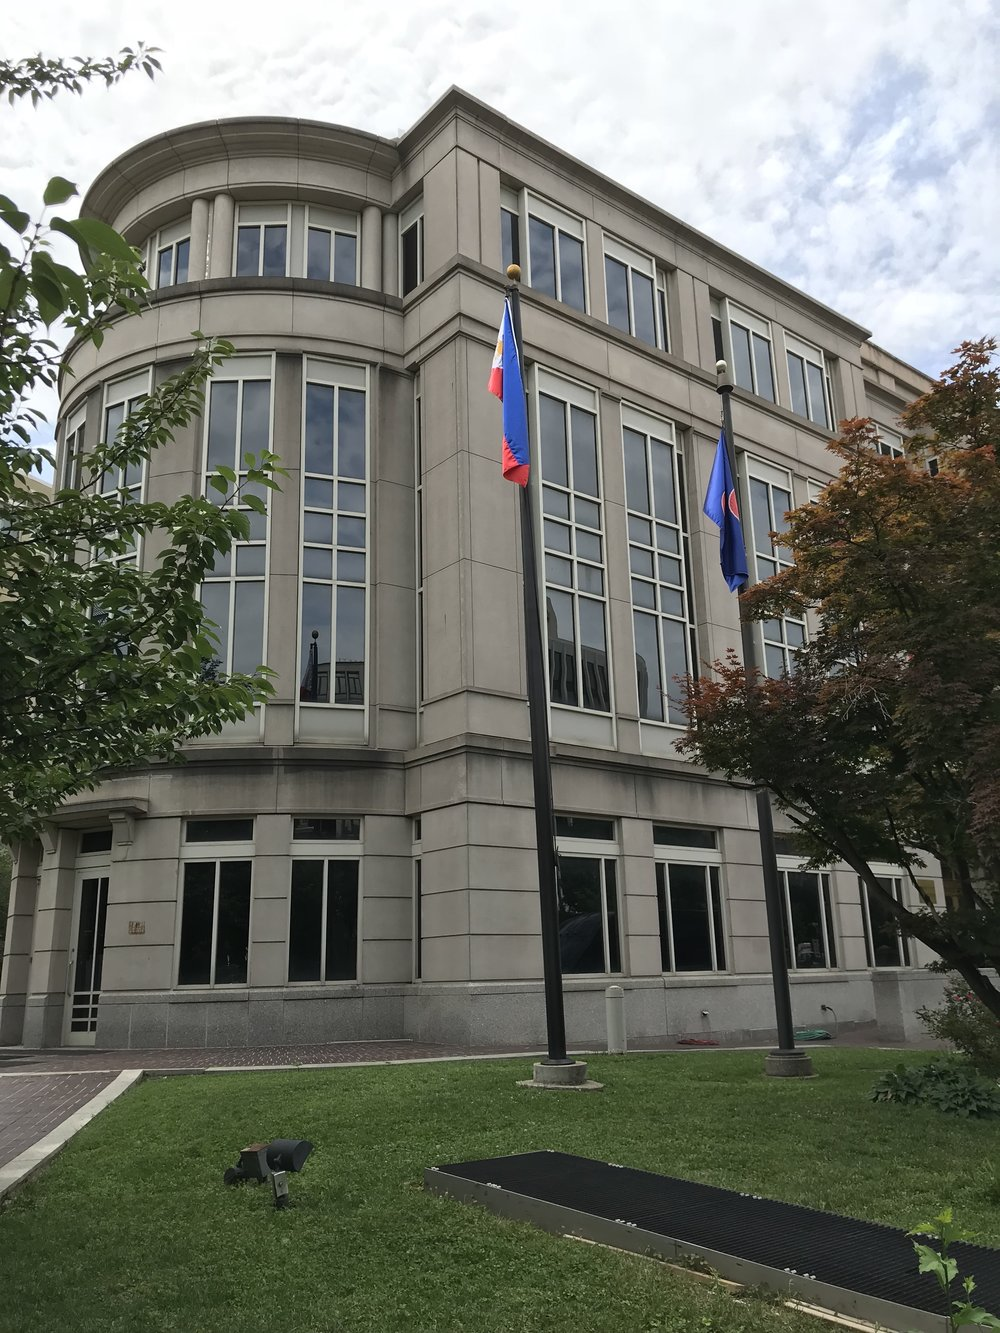 The Embassy of the Philippines.